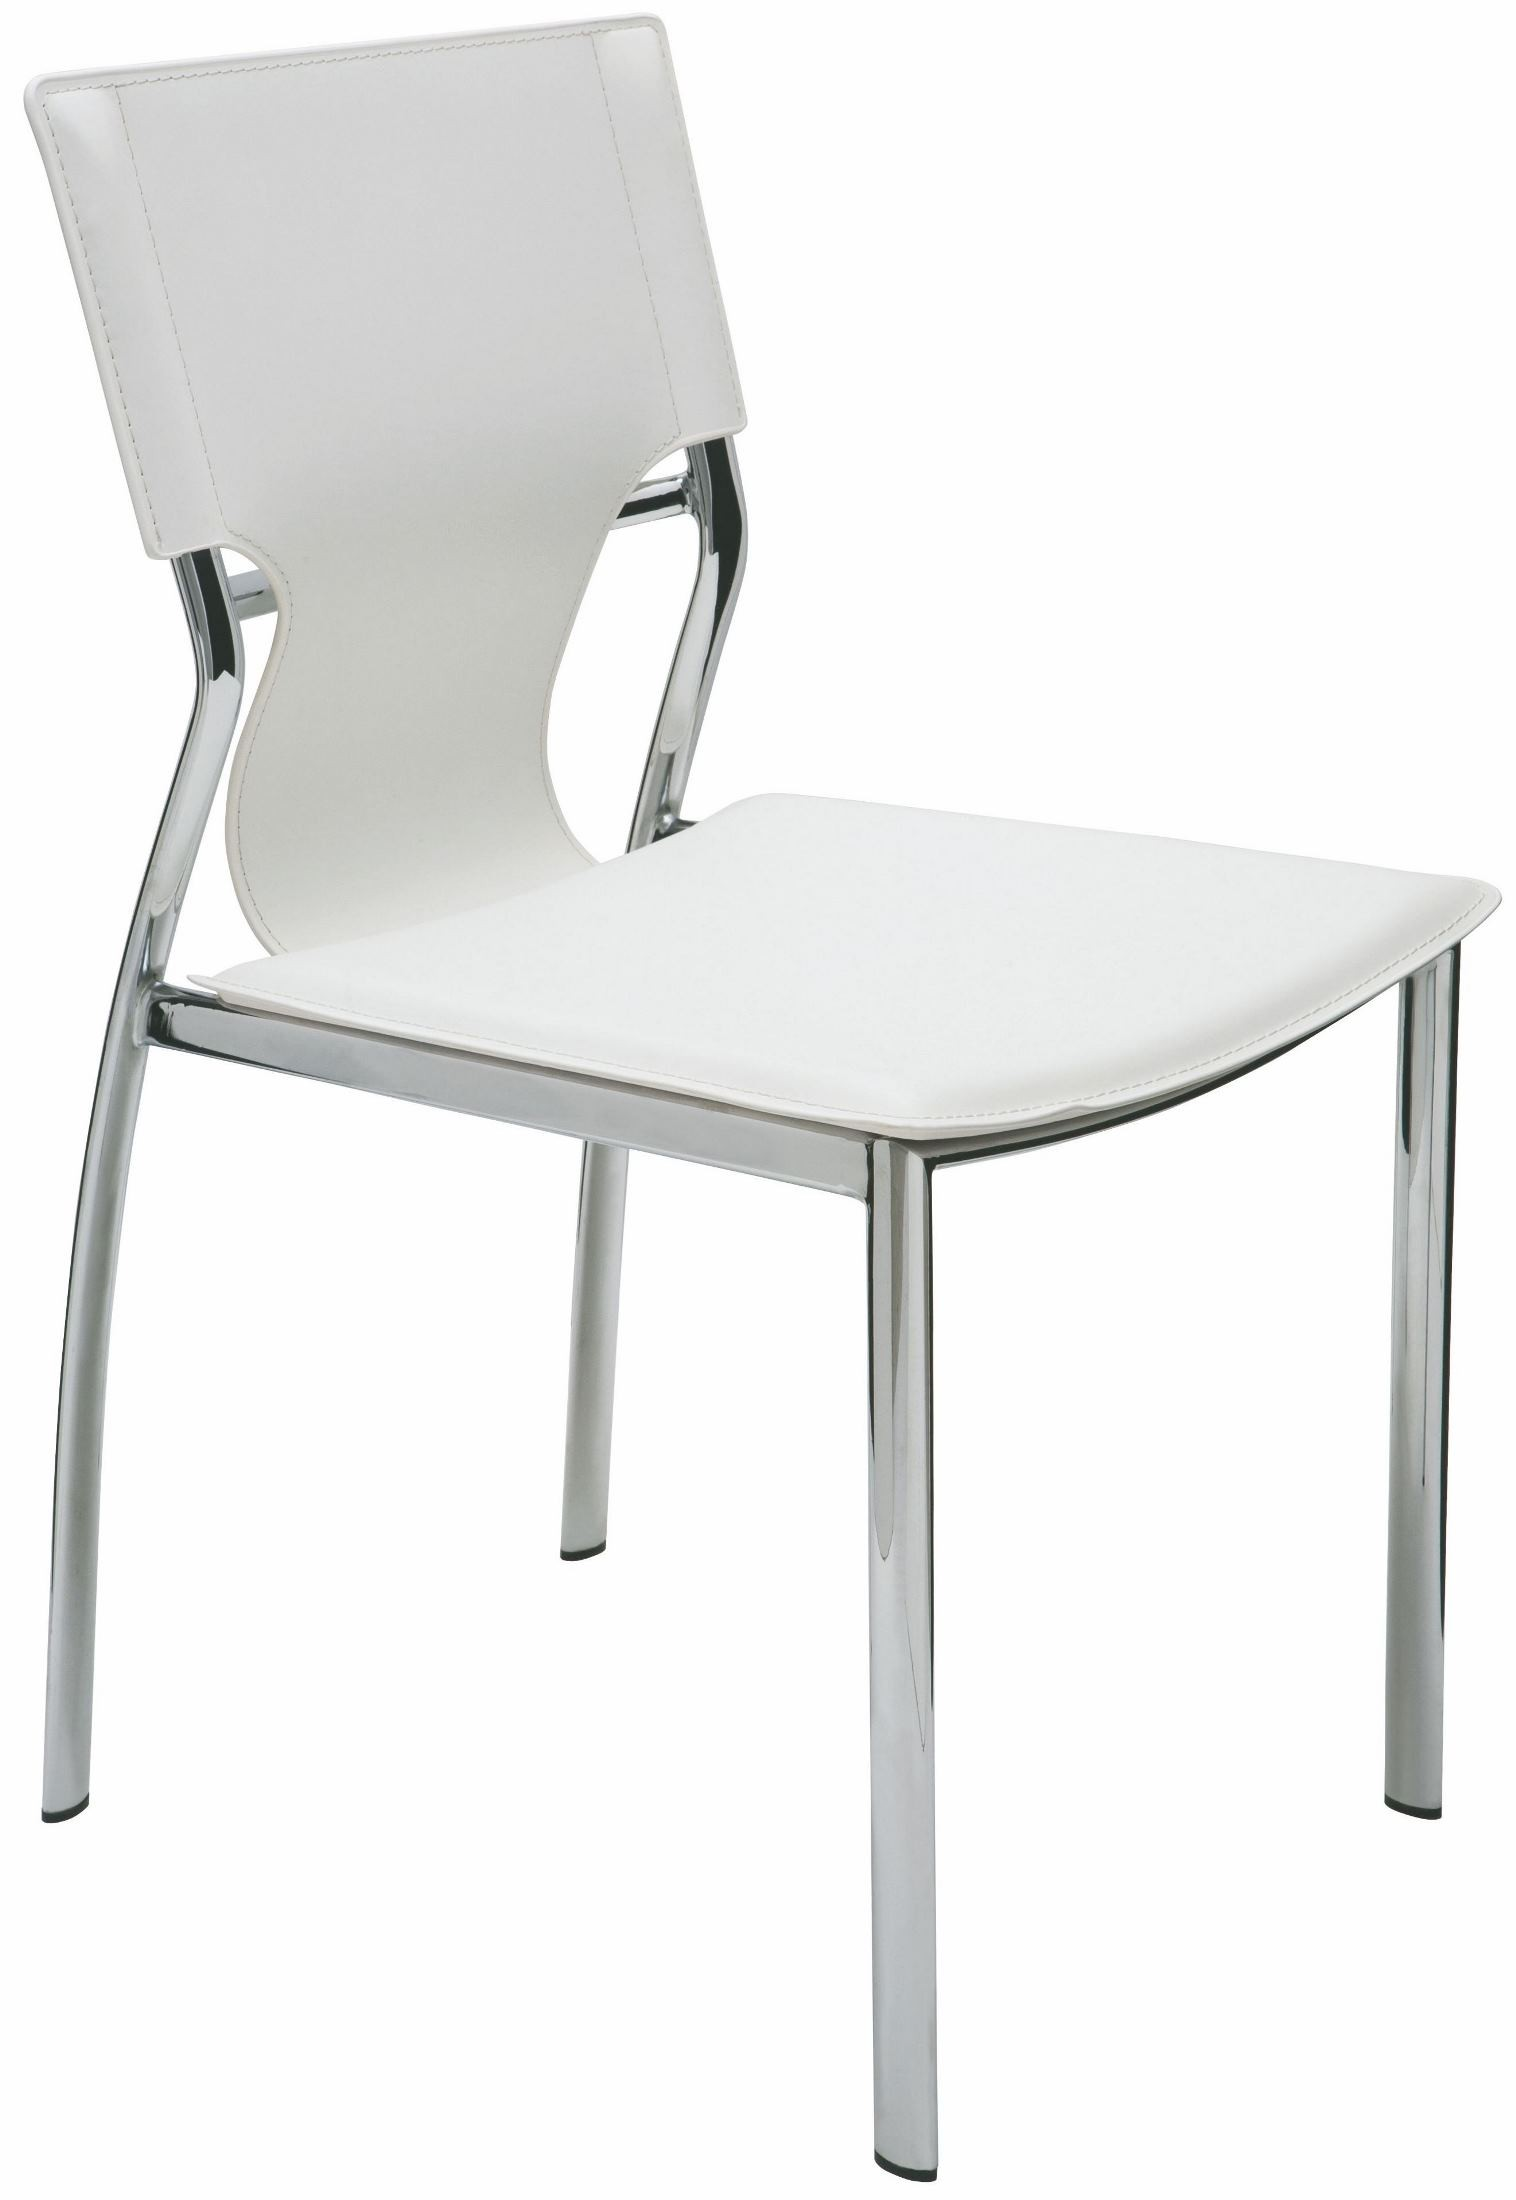 Lisbon white leather dining chair hgga243 nuevo for White leather dining chairs